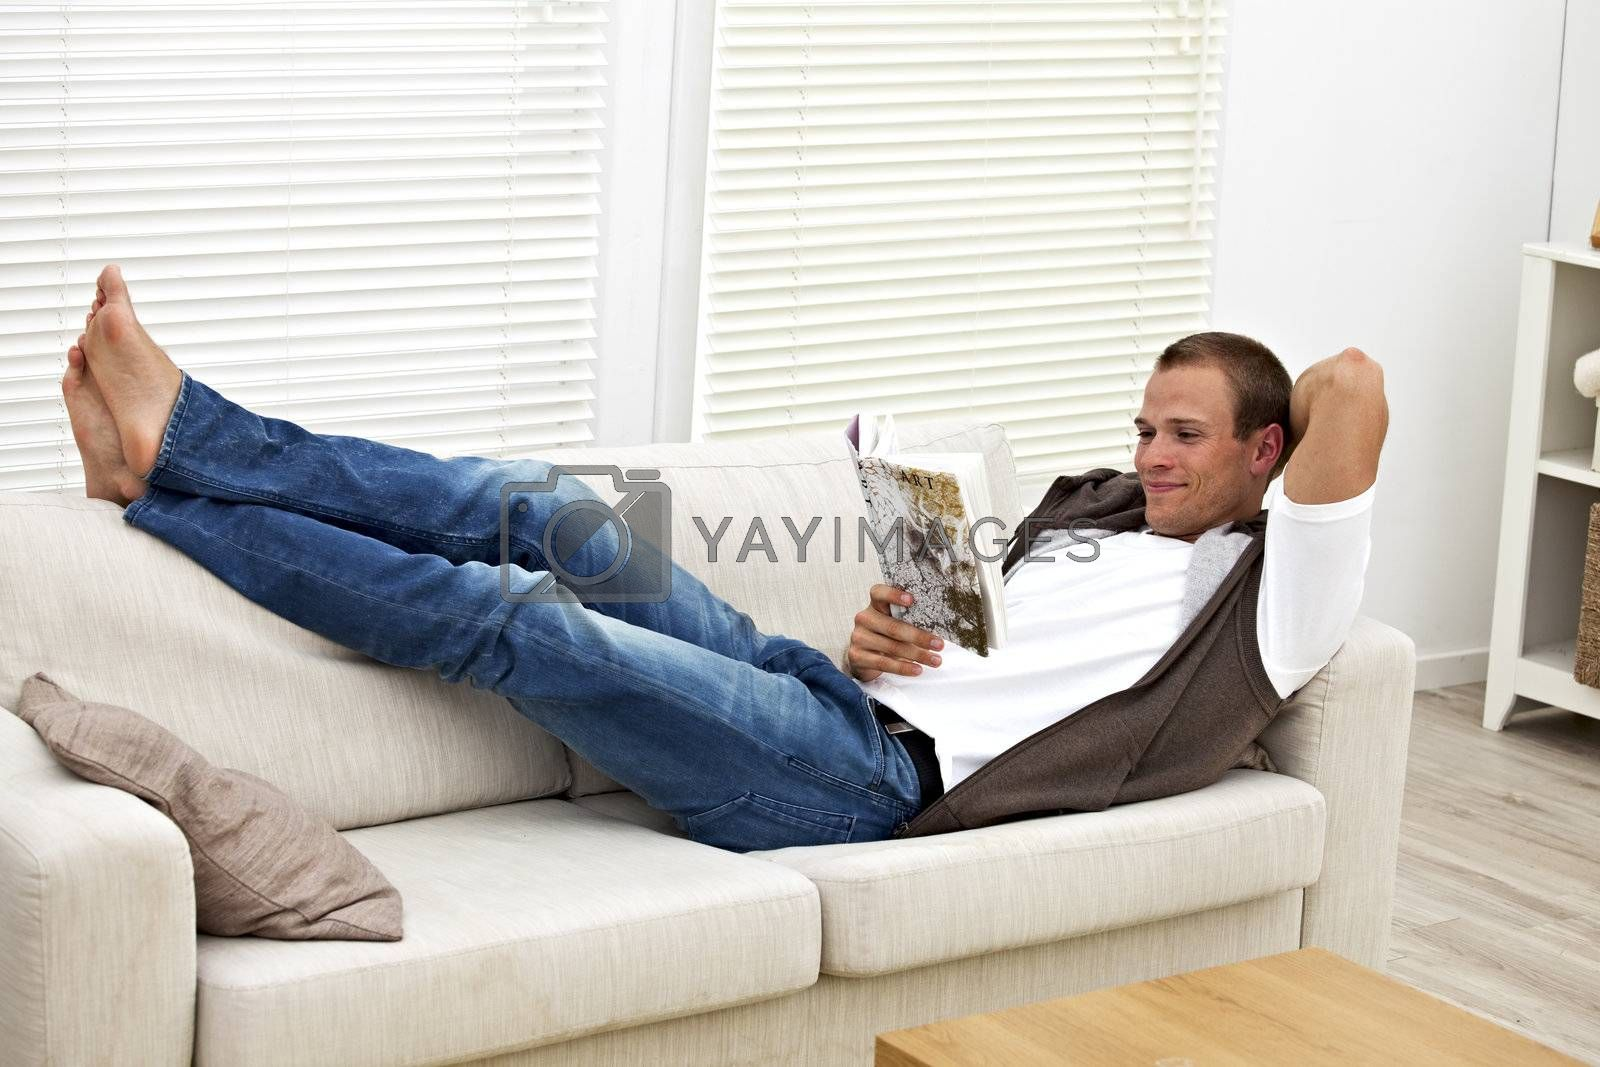 smiling young man on a couch reading a book